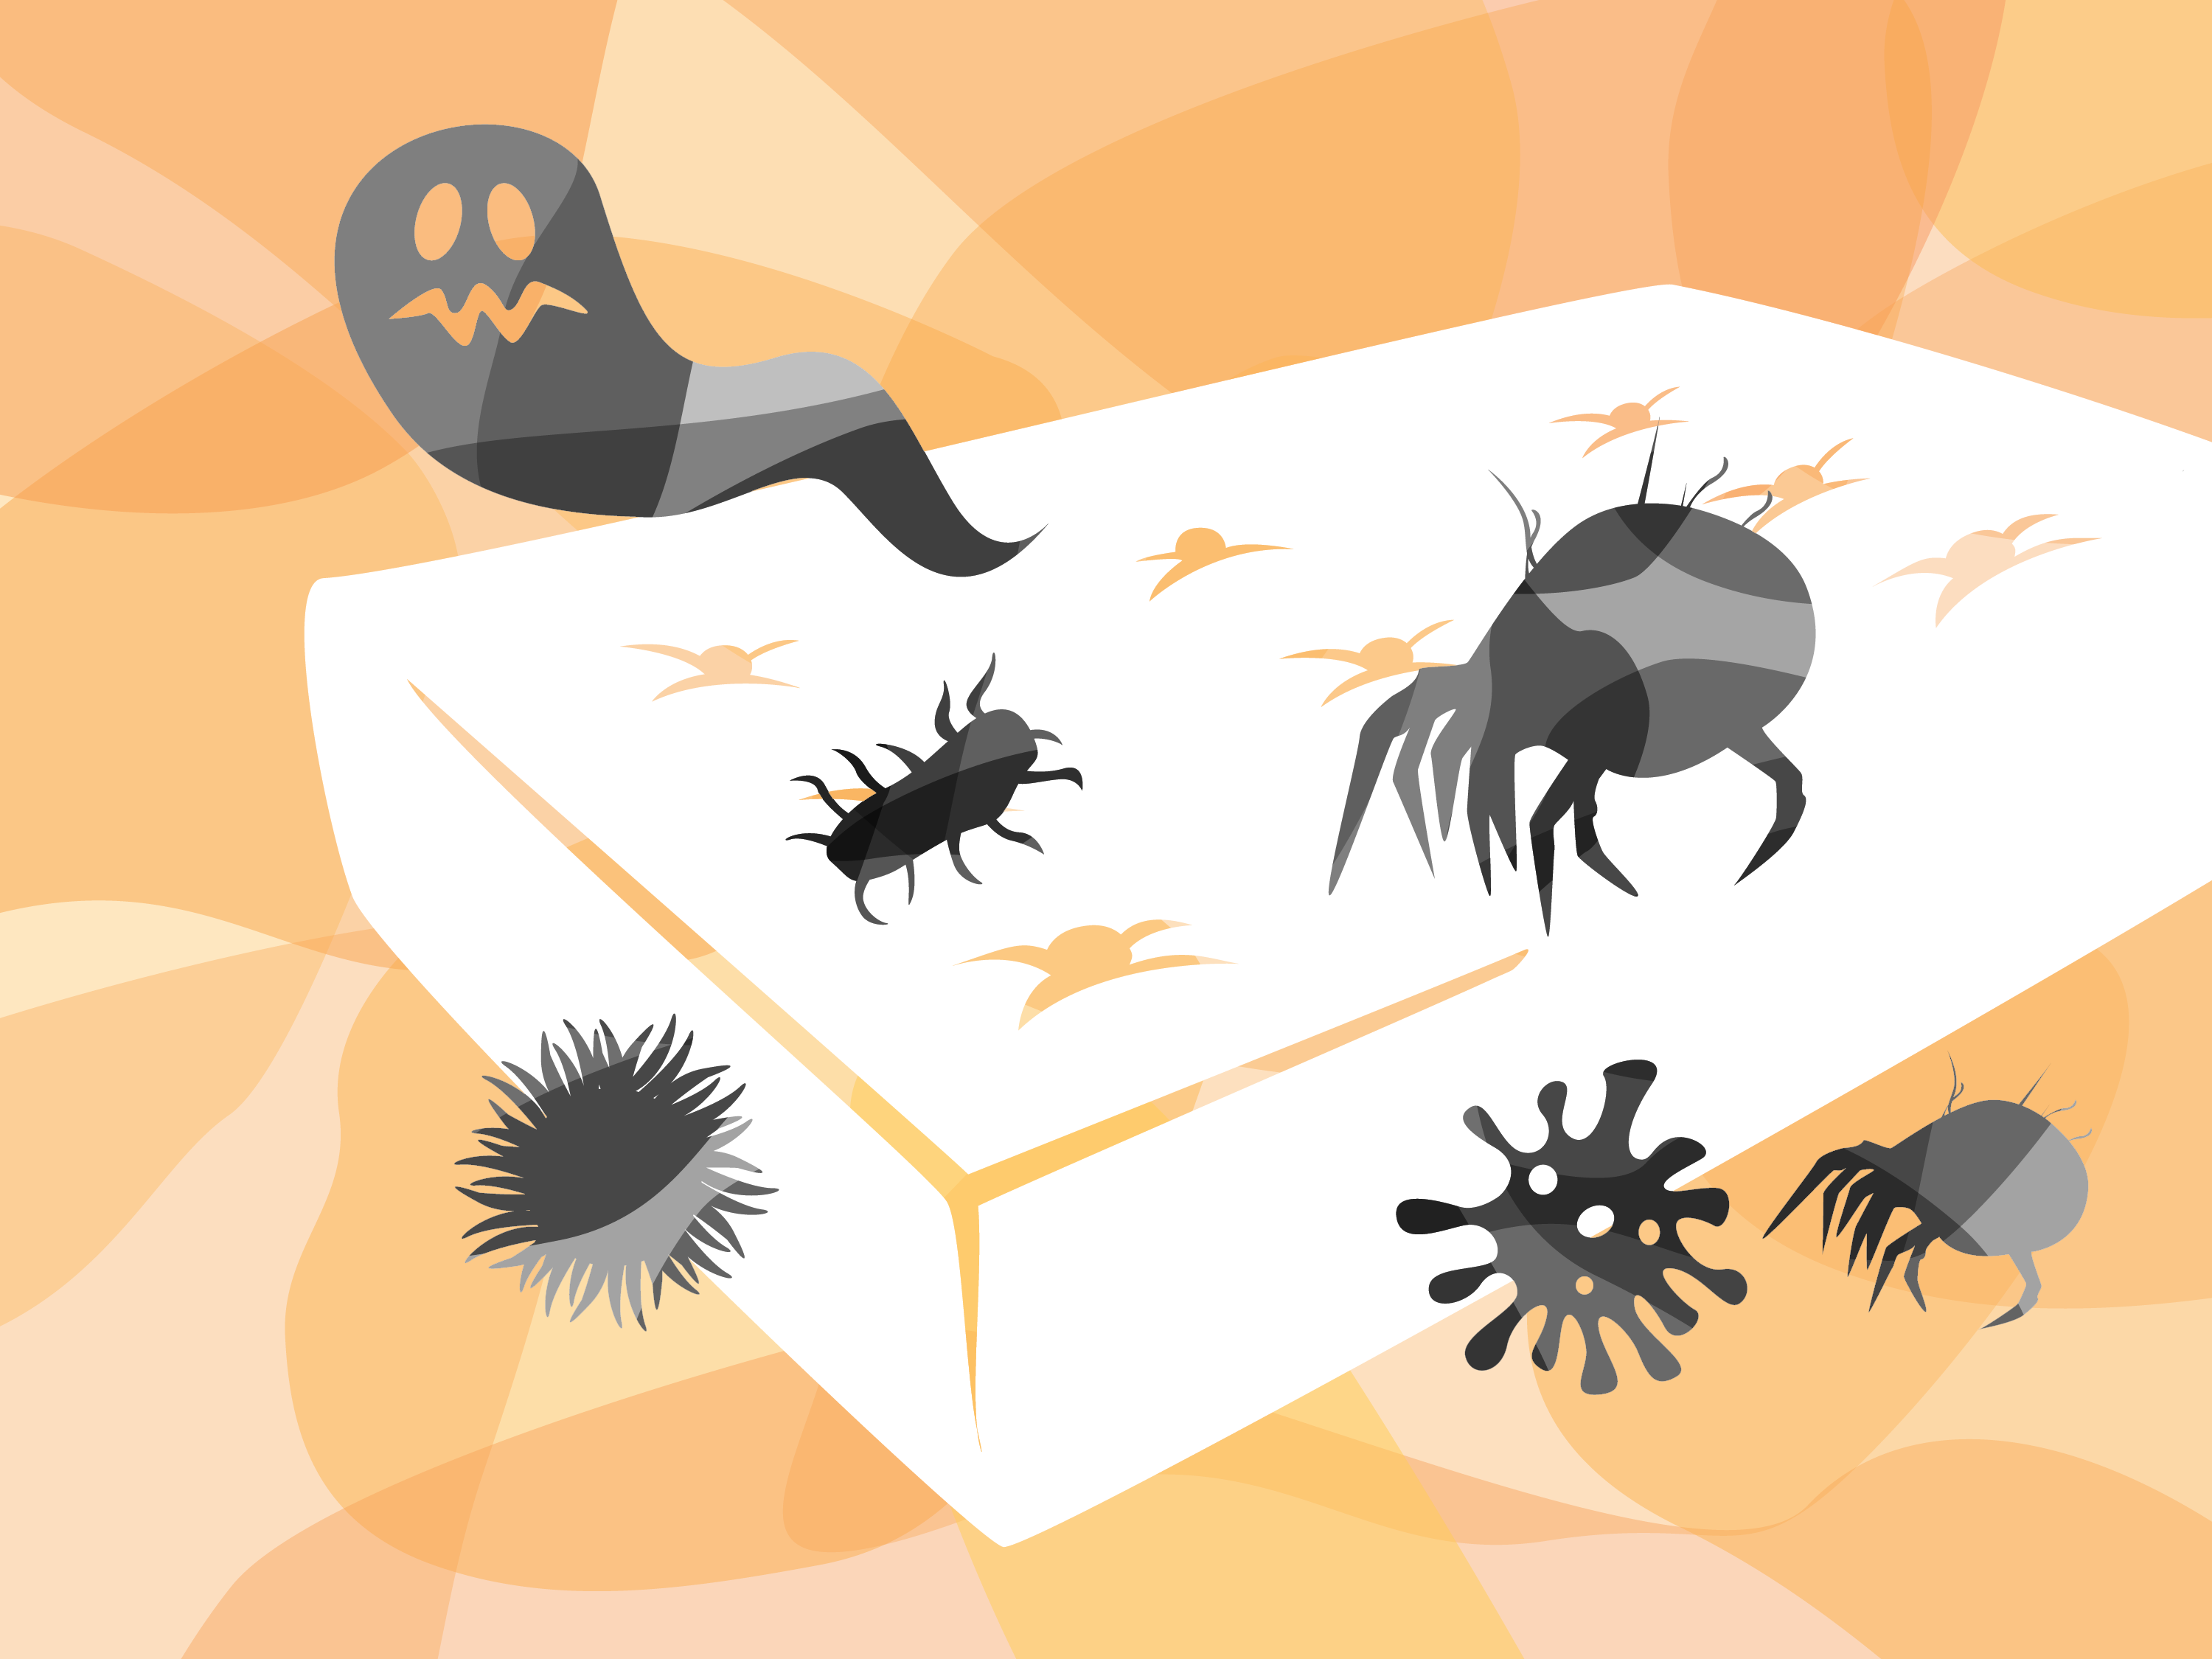 Scary mattress illustration